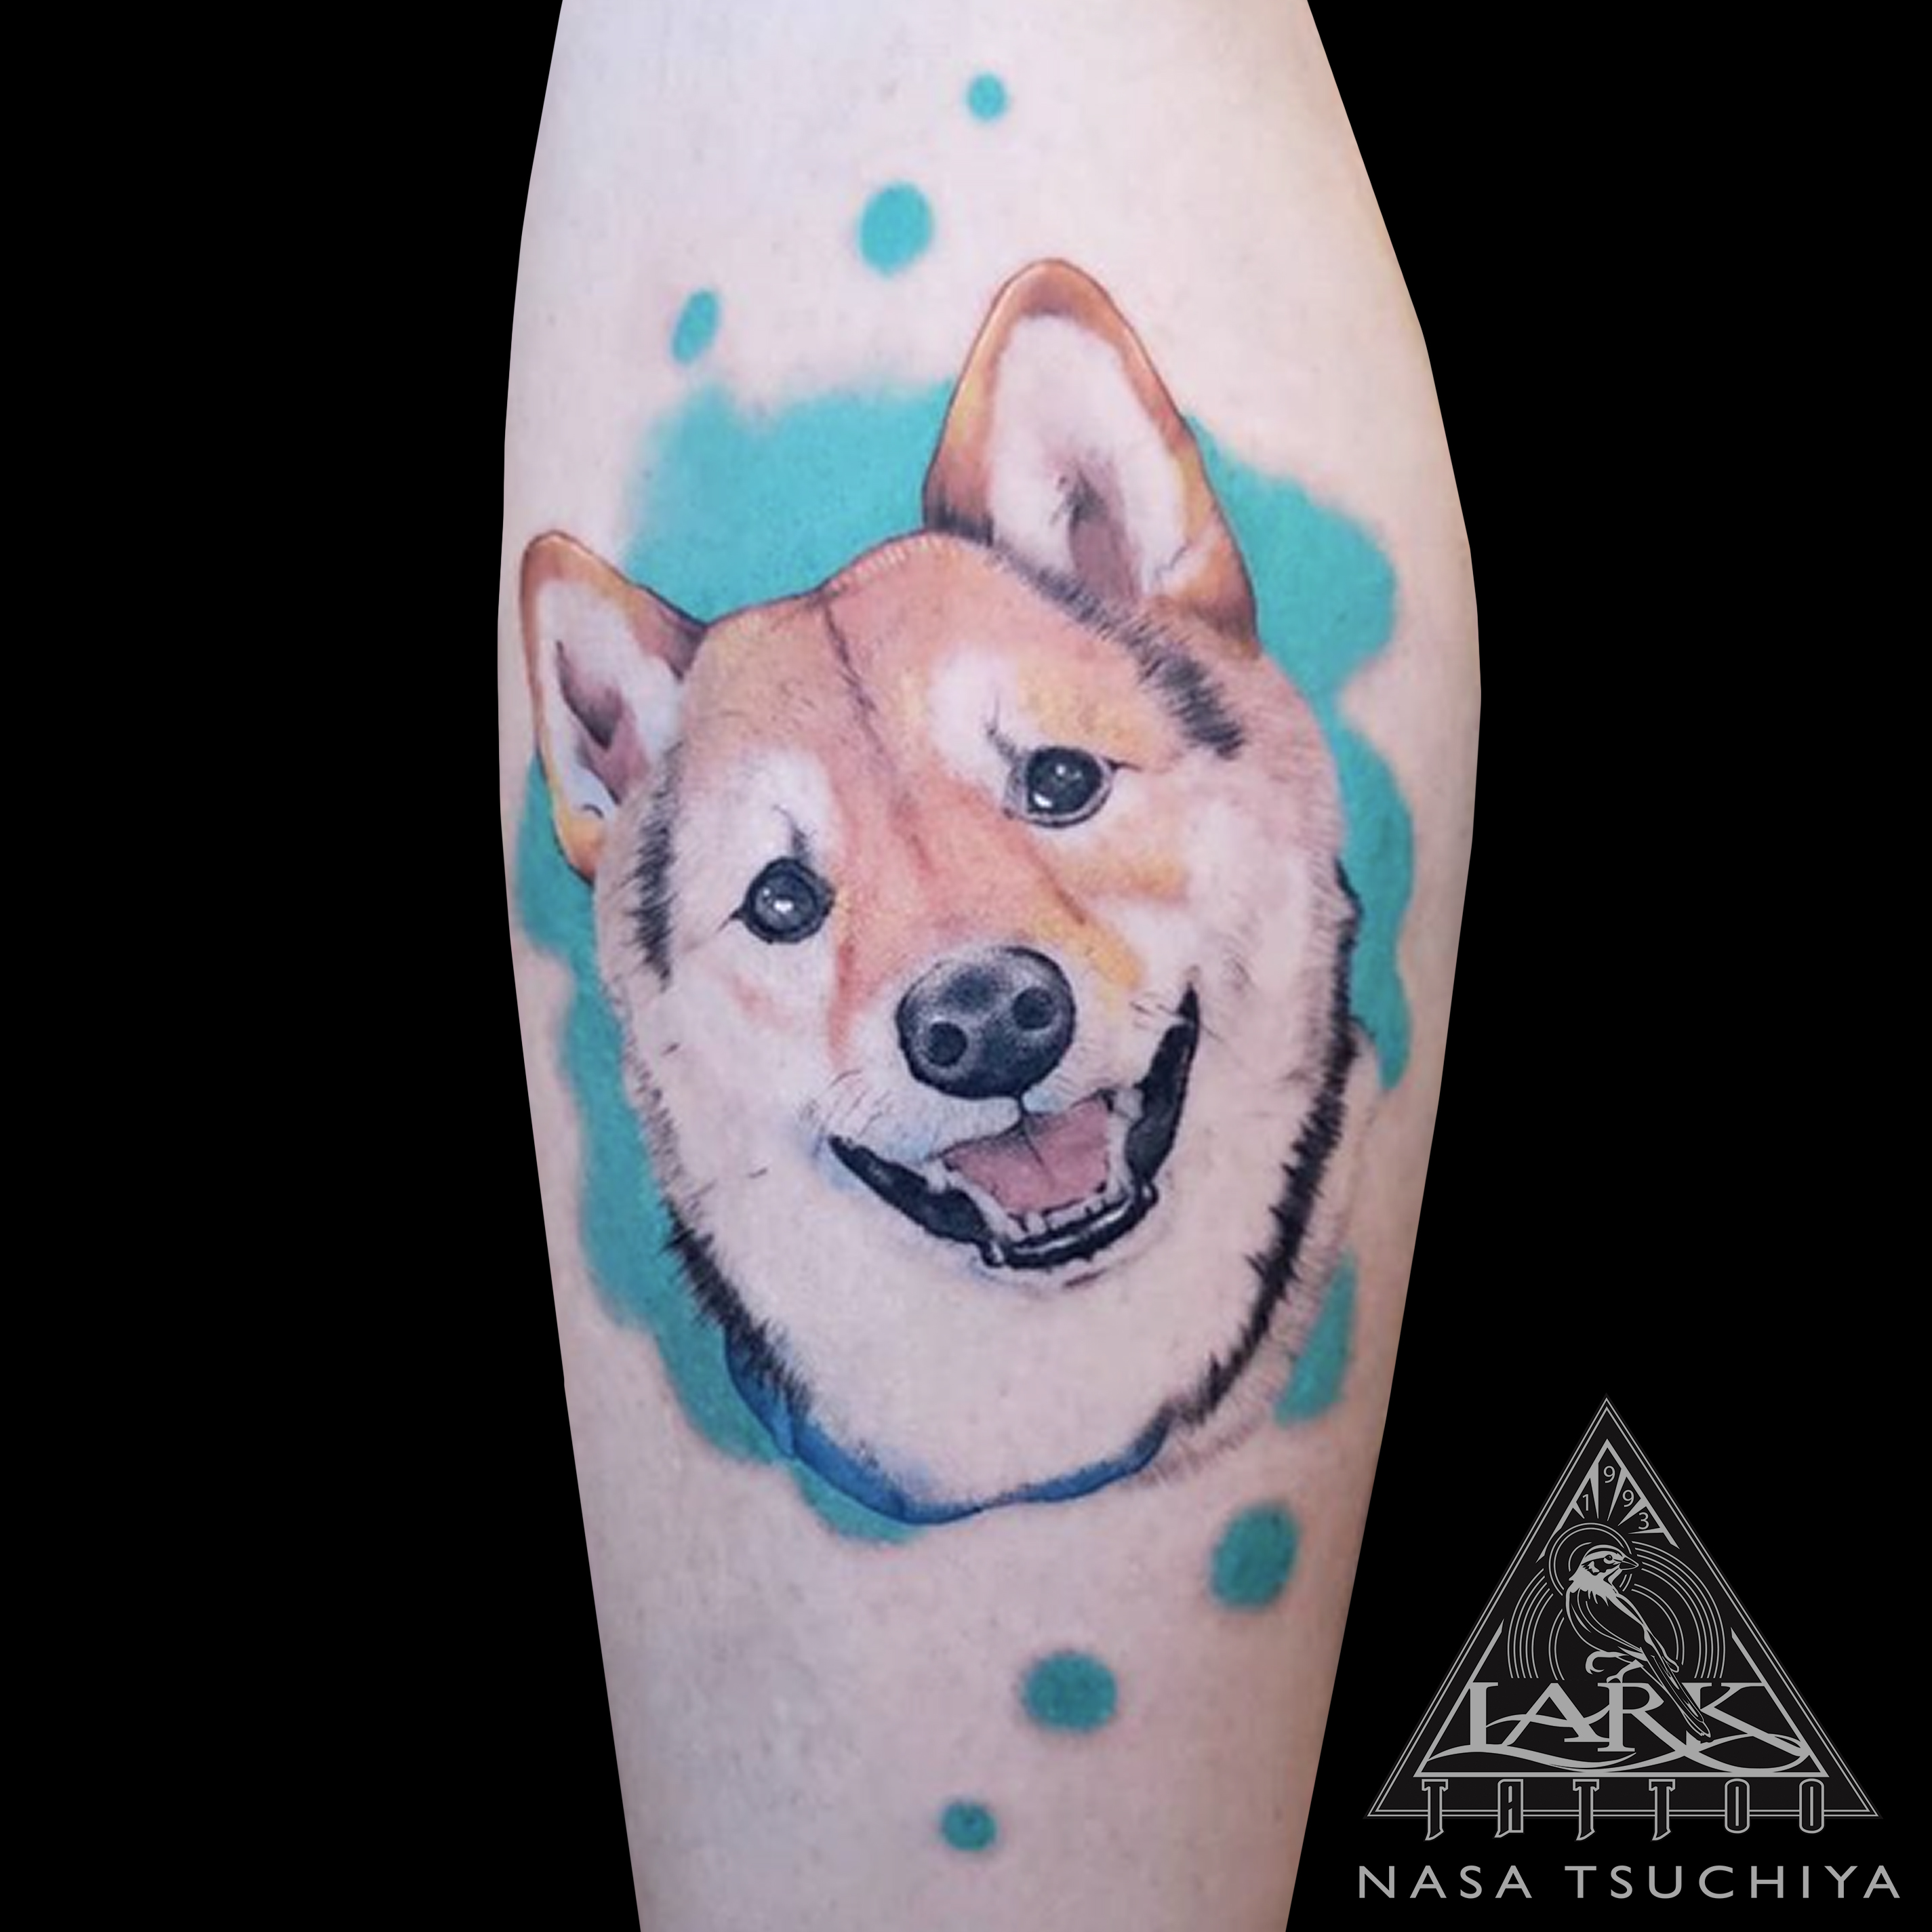 LarkTattoo, Tattoo, Tattoos , Shibainu, ShibainuTattoo, FemaleTattooer, FemaleArtist, FemaleTattooArtist, LadyTattoer, CuteTattoo, ColorTattoo, TattooArtist, Tattoist, Tattooer, LongIslandTattooArtist, LongIslandTattooer, LongIslandTattoo, Dog, Petstagram, DogPortrait, DogPortraitTattoo, DogTattoo, Pet, PetTattoo, Animal, AnimalTattoo, PetPortrait, PetPortraitTattoo, Portrait, PortraitTattoo, AnimalLover, AnimalLoverTattoo, AnimalLovers, AnimalLoversTattoo, DogLover, DogLoverTattoo, DogLovers, DogLoversTattoo, Realism, RealismTattoo, Realistic, RealisticTattoo, TattooOfTheDay, Tat, Tats, Tatts, Tatted, Inked, Ink, TattooInk, AmazingInk, AmazingTattoo, BodyArt, LarkTattooWestbury, Westbury, LongIsland, NY, NewYork, USA, Art, Tattedup, InkedUp, LarkTattoos